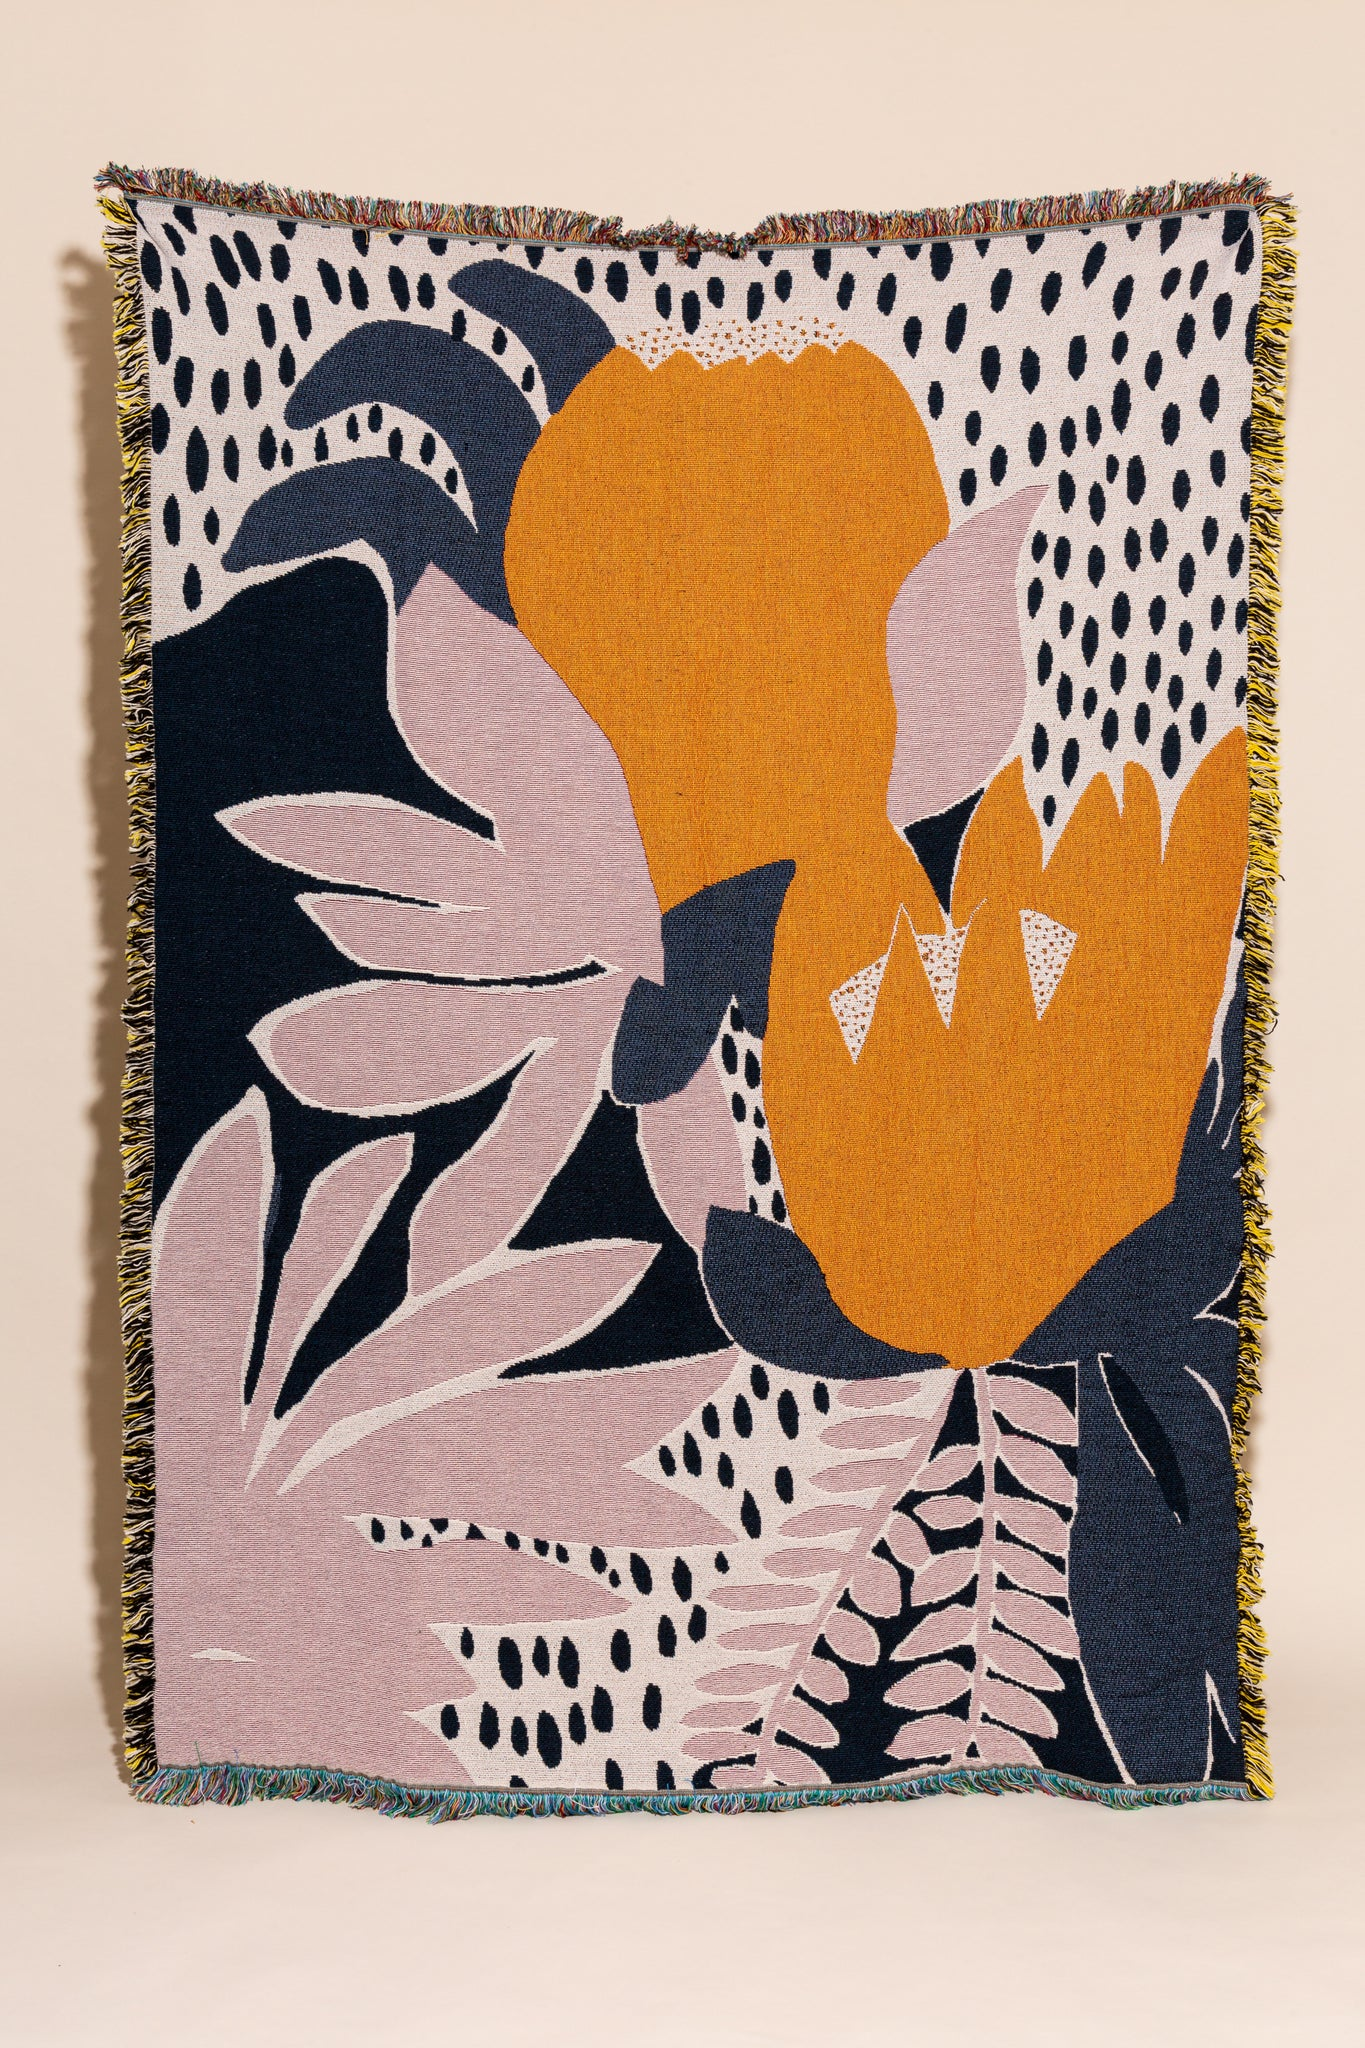 Jacquard Woven Throw in Sugarbush Print by Cassie Byrnes for Variety Hour